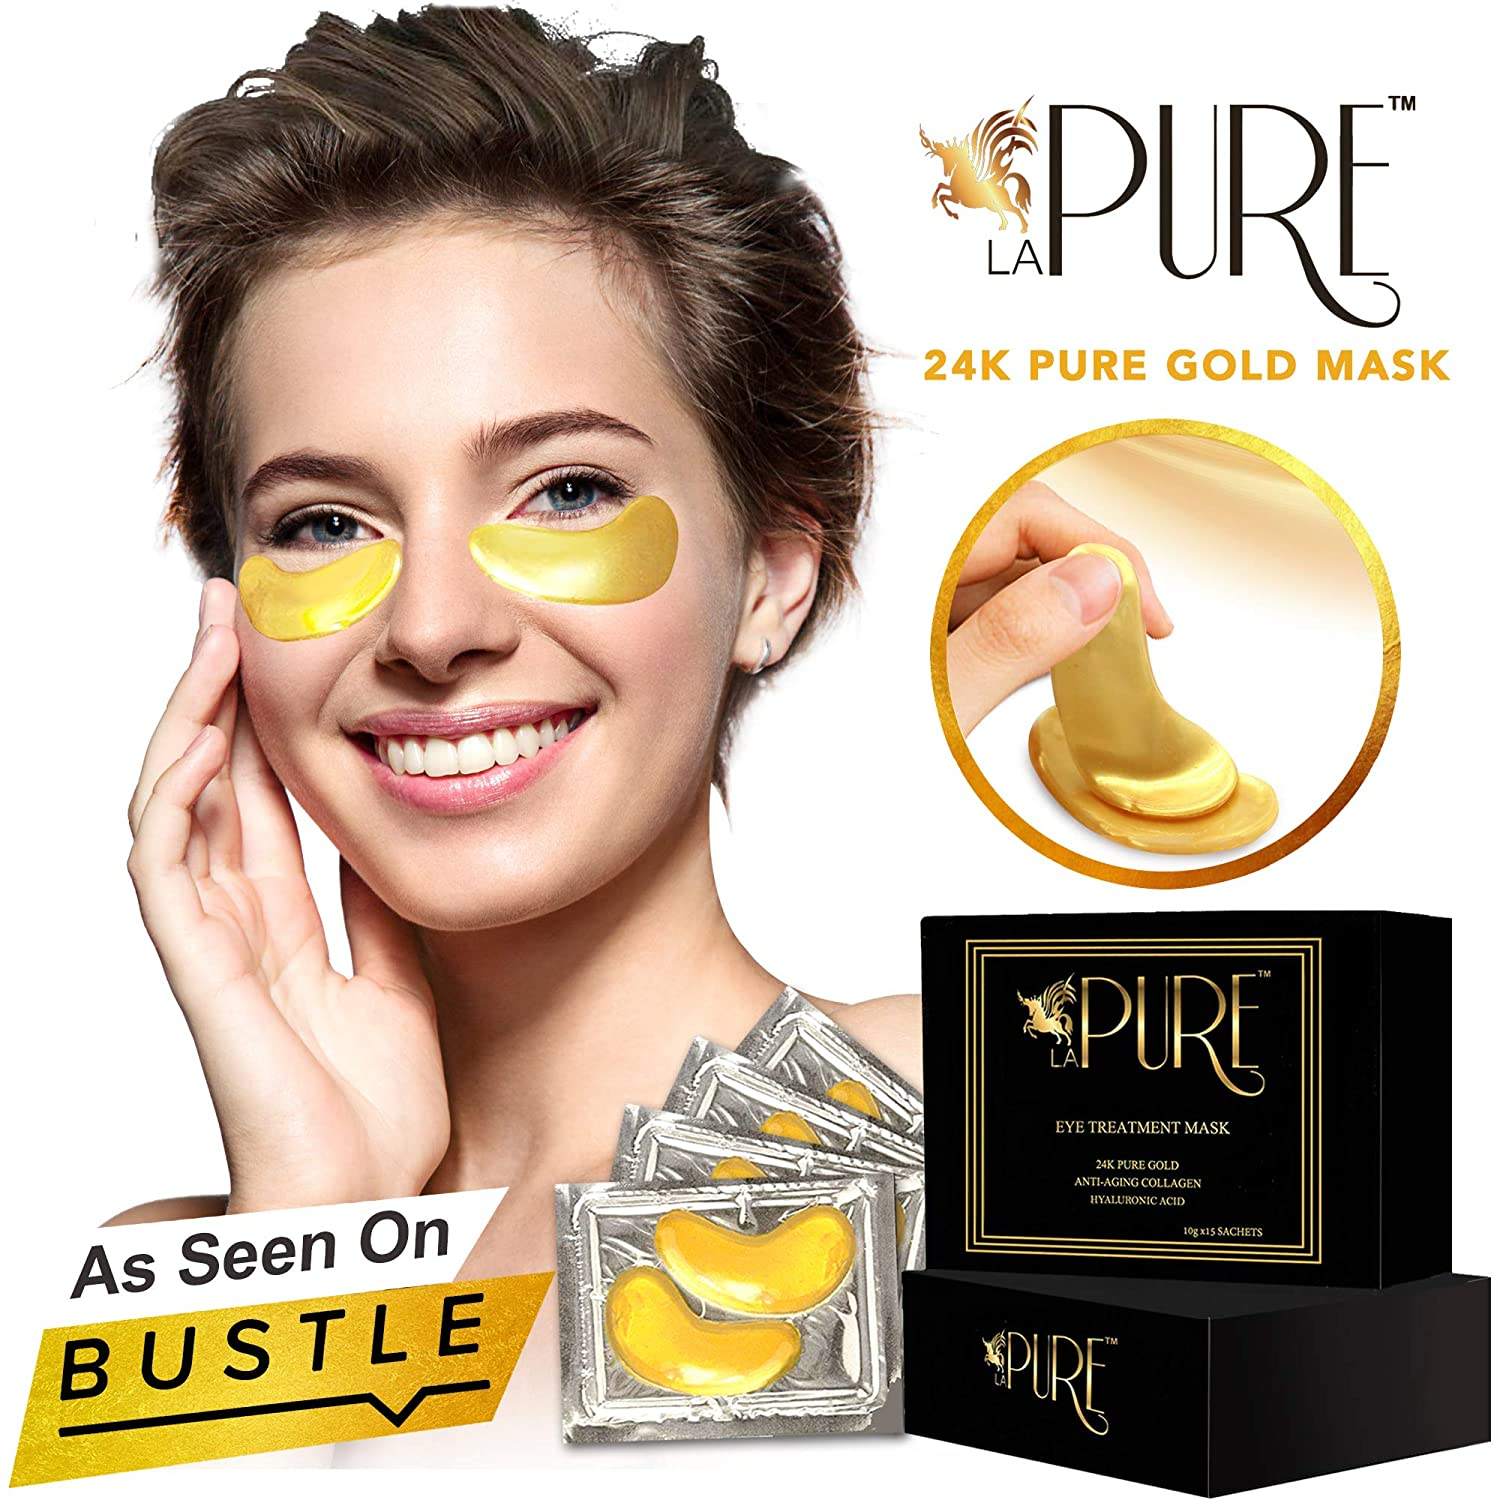 LA PURE 24K Gold Eye Treatment Masks - Under Eye Patches, Dark Circles Under Eye Treatment, Under Eye Bags Treatment, Eye Mask for Puffy Eyes, Anti-Wrinkle, Undereye Dark Circles, Gel Pads 15 Pairs : Beauty